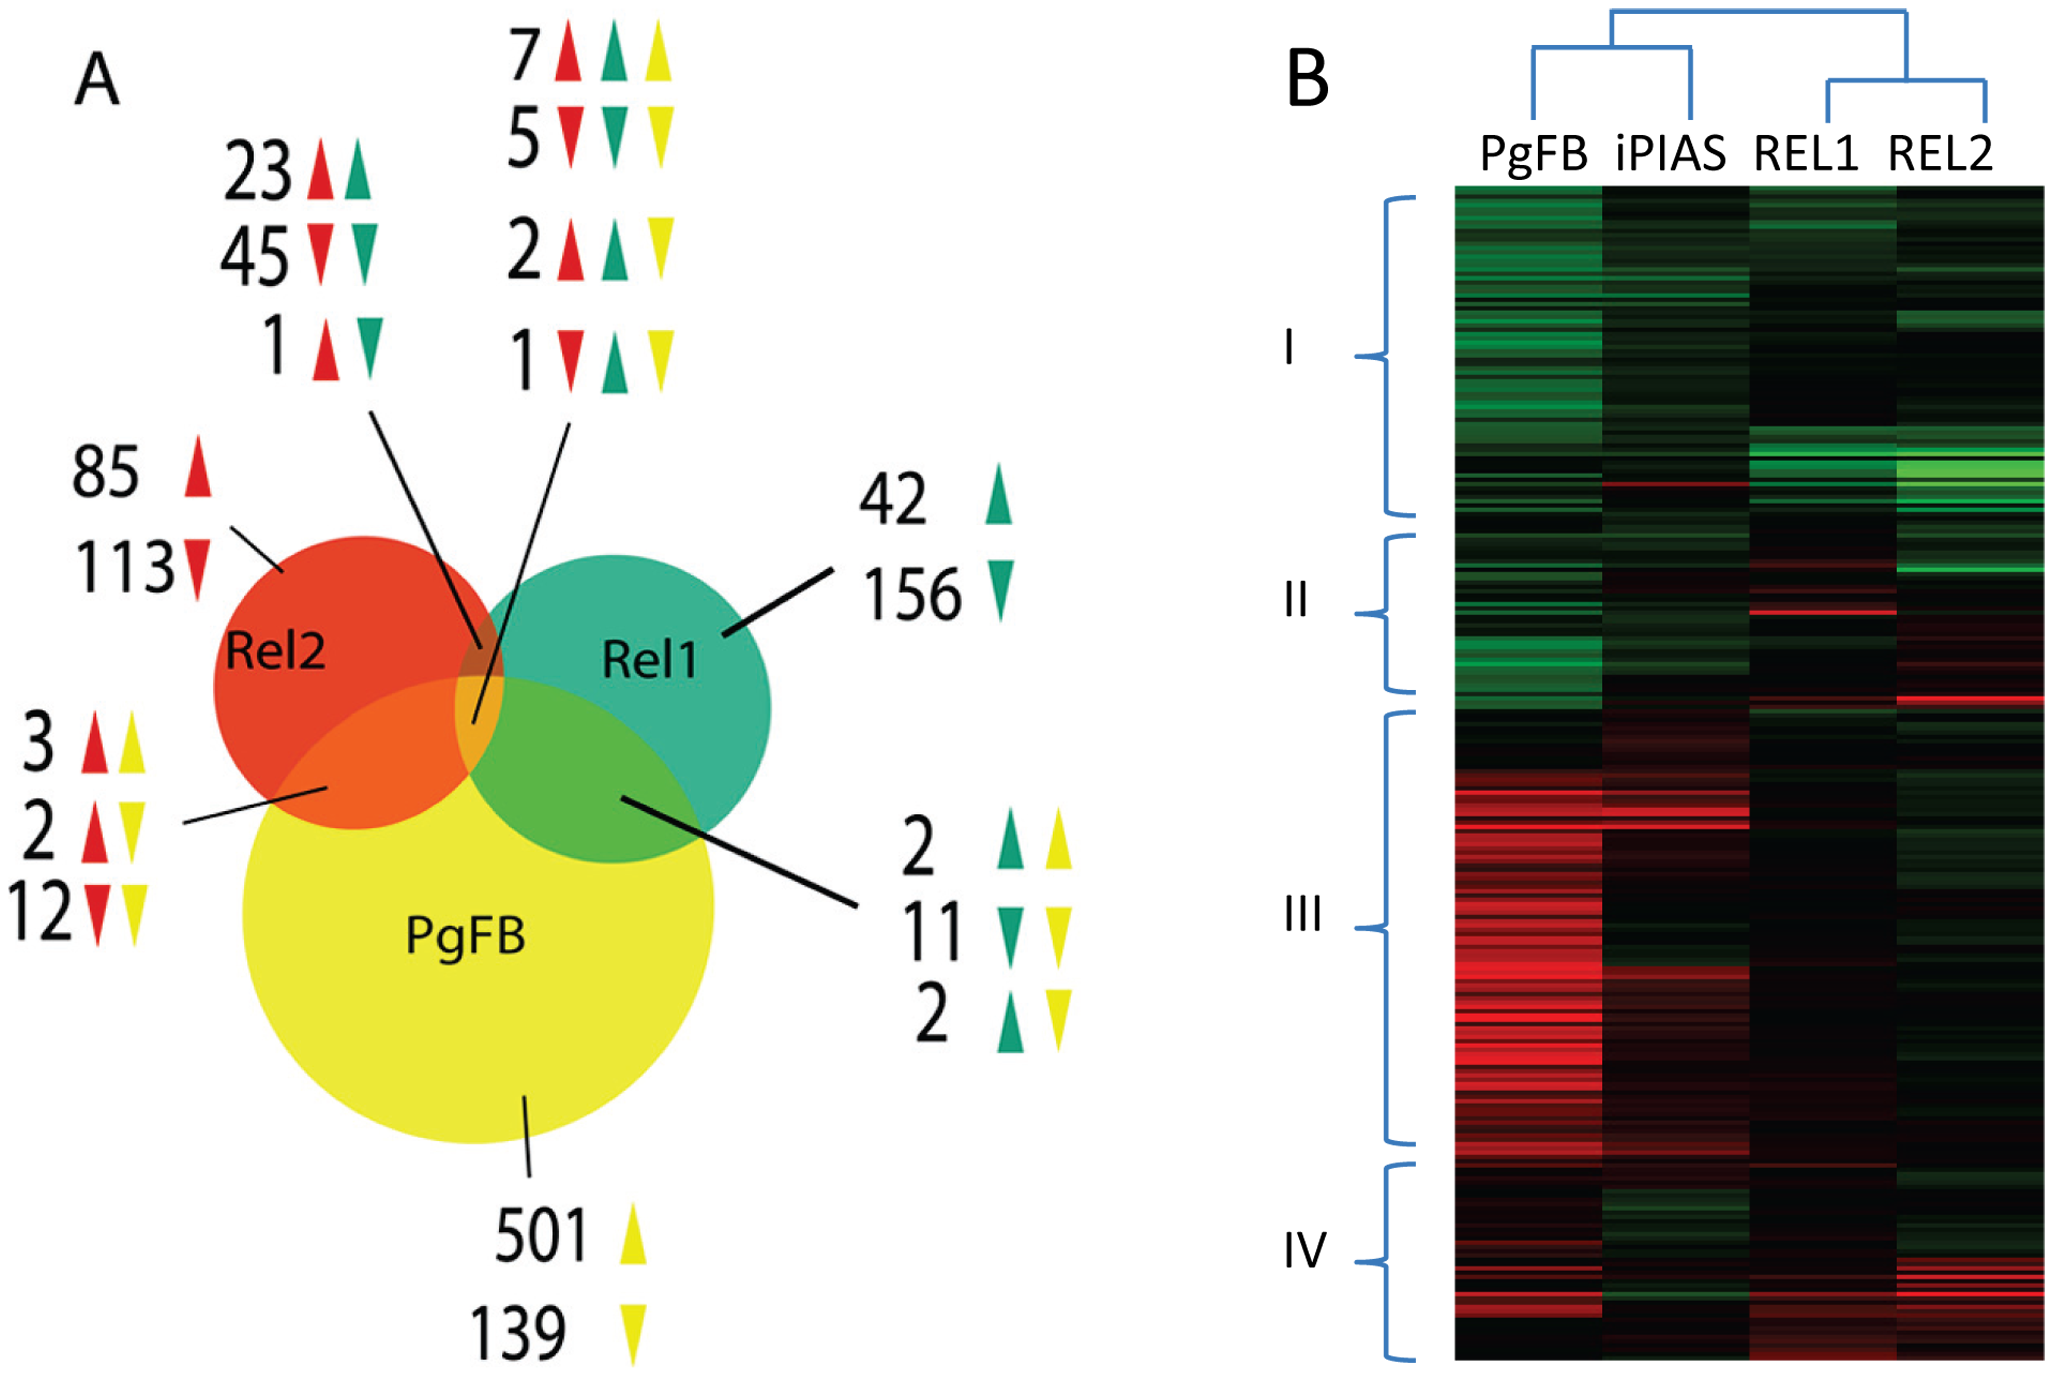 Comparative analysis of the <i>P. gallinaceum</i> fat body responsive to the <i>REL1</i>- and <i>REL2</i>-regulated transcriptomes.